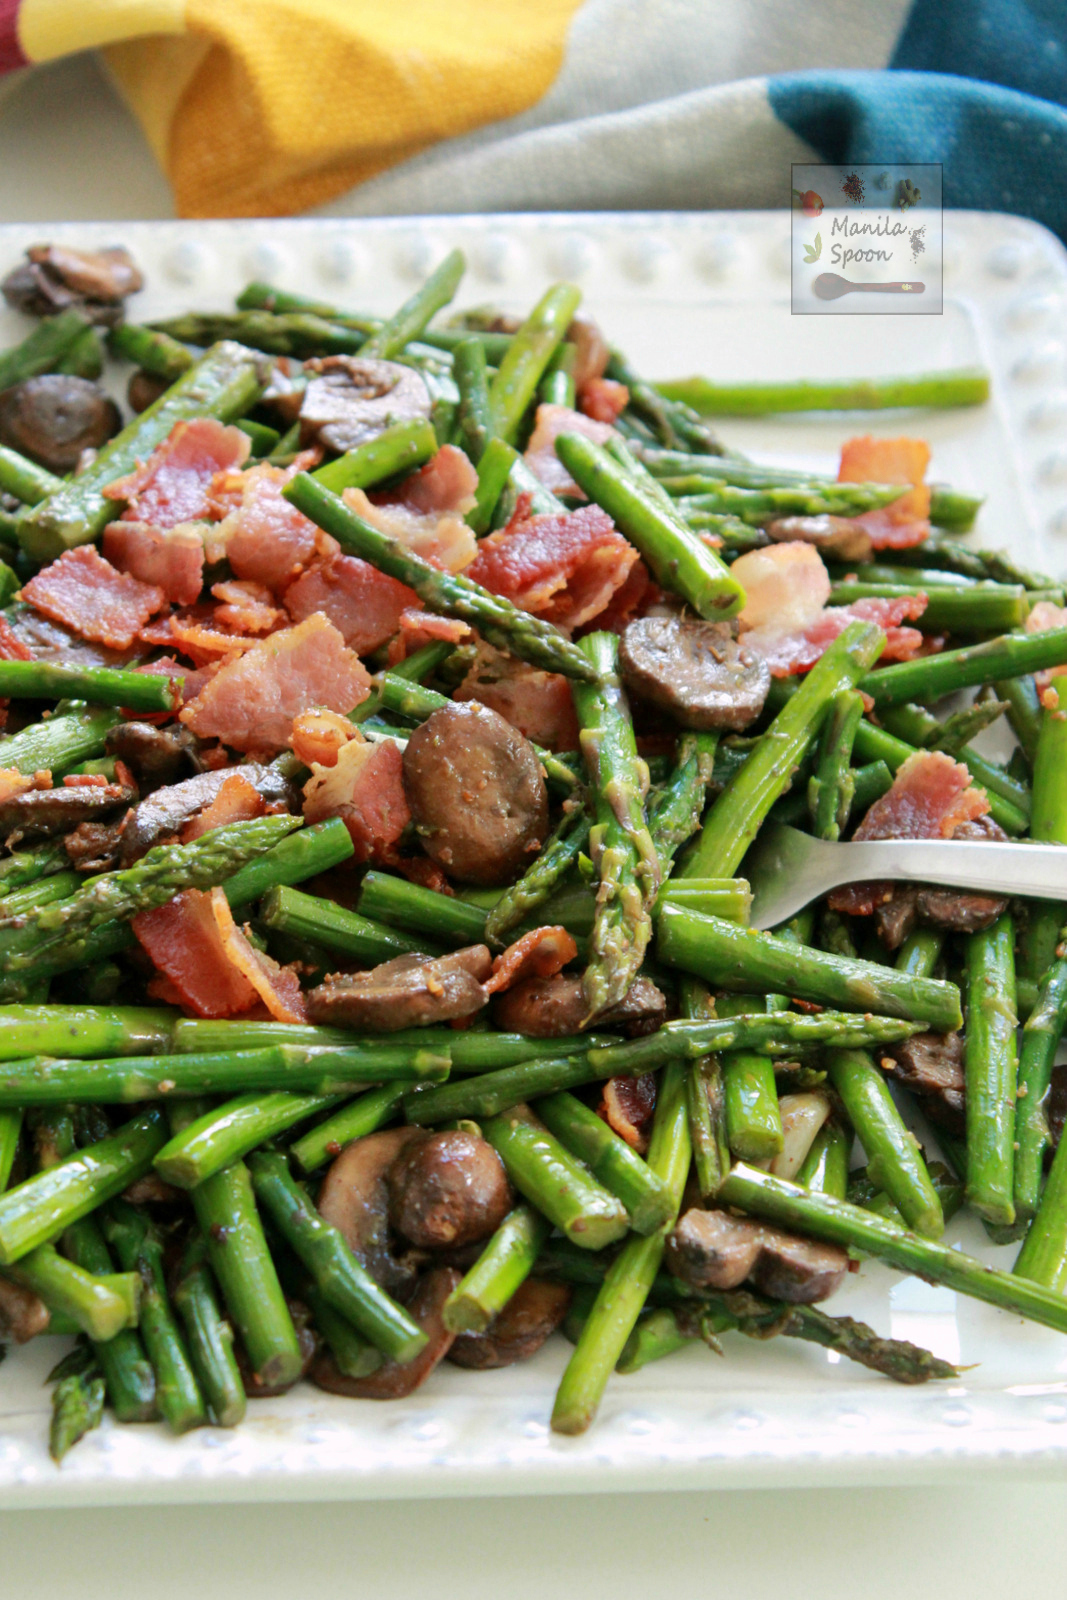 Asparagus with Bacon and Mushrooms